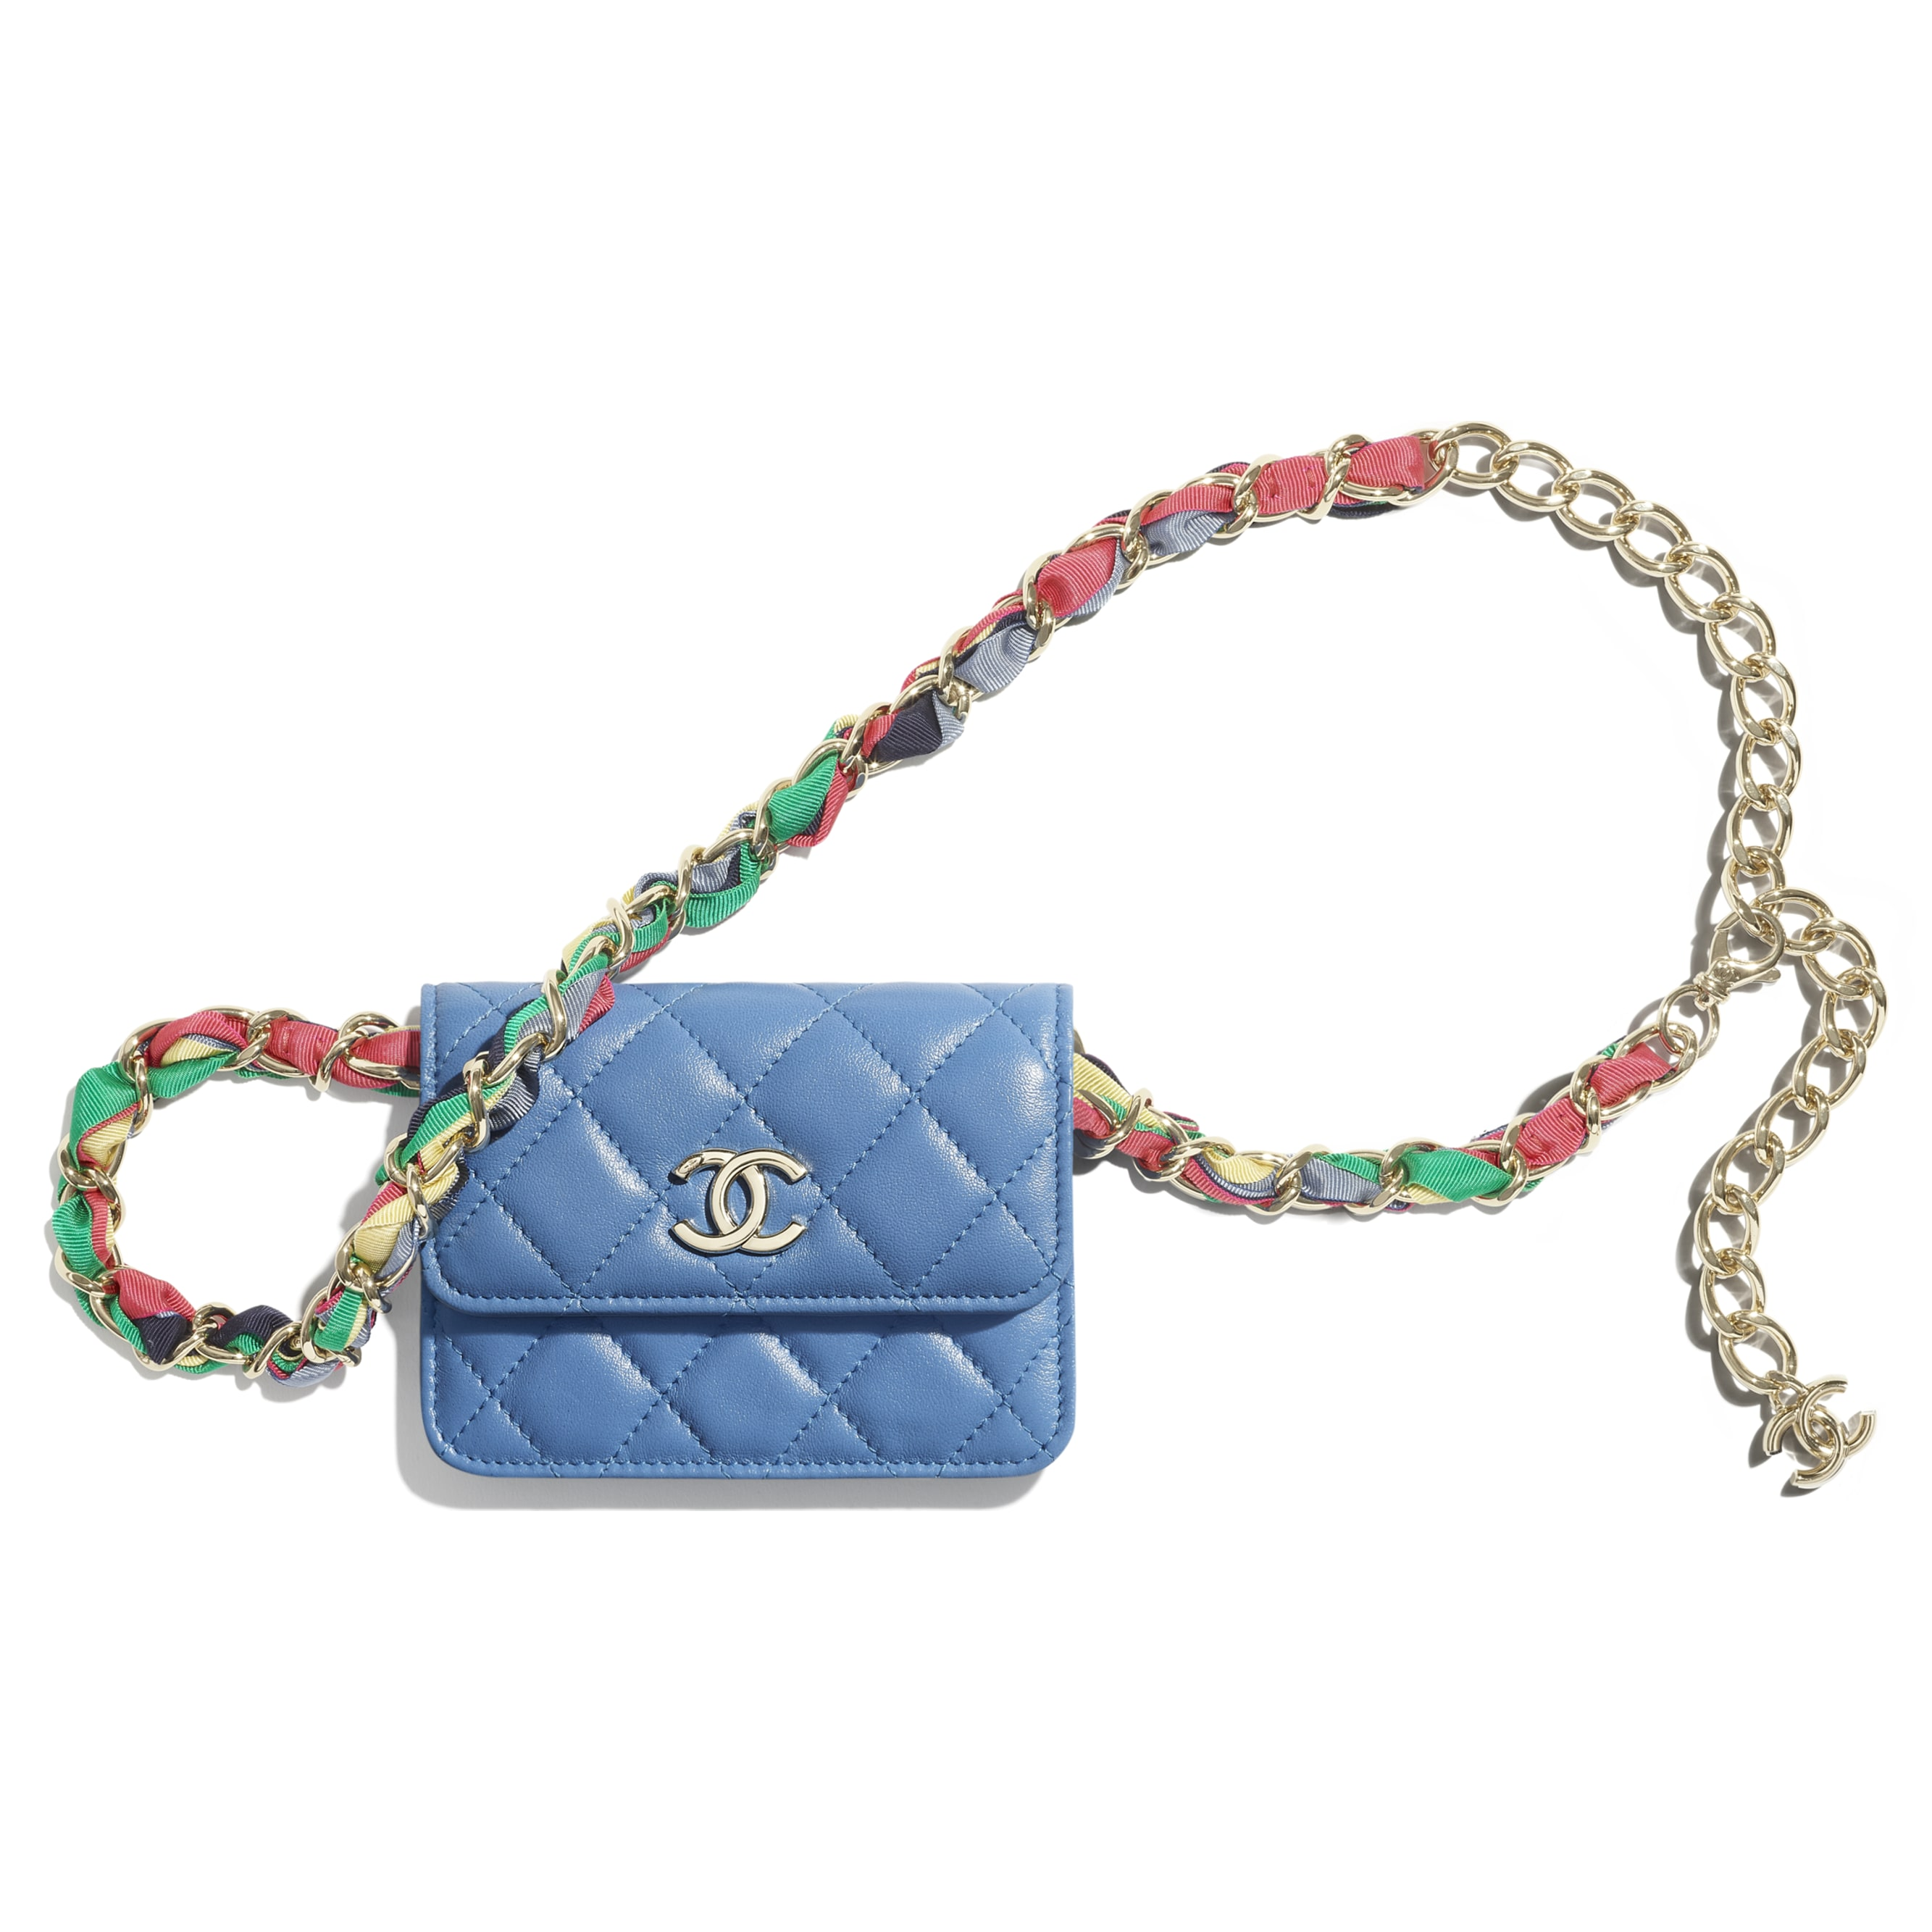 Belt Bag - Blue - Shiny Lambskin, Ribbon & Gold-Tone Metal - CHANEL - Default view - see standard sized version